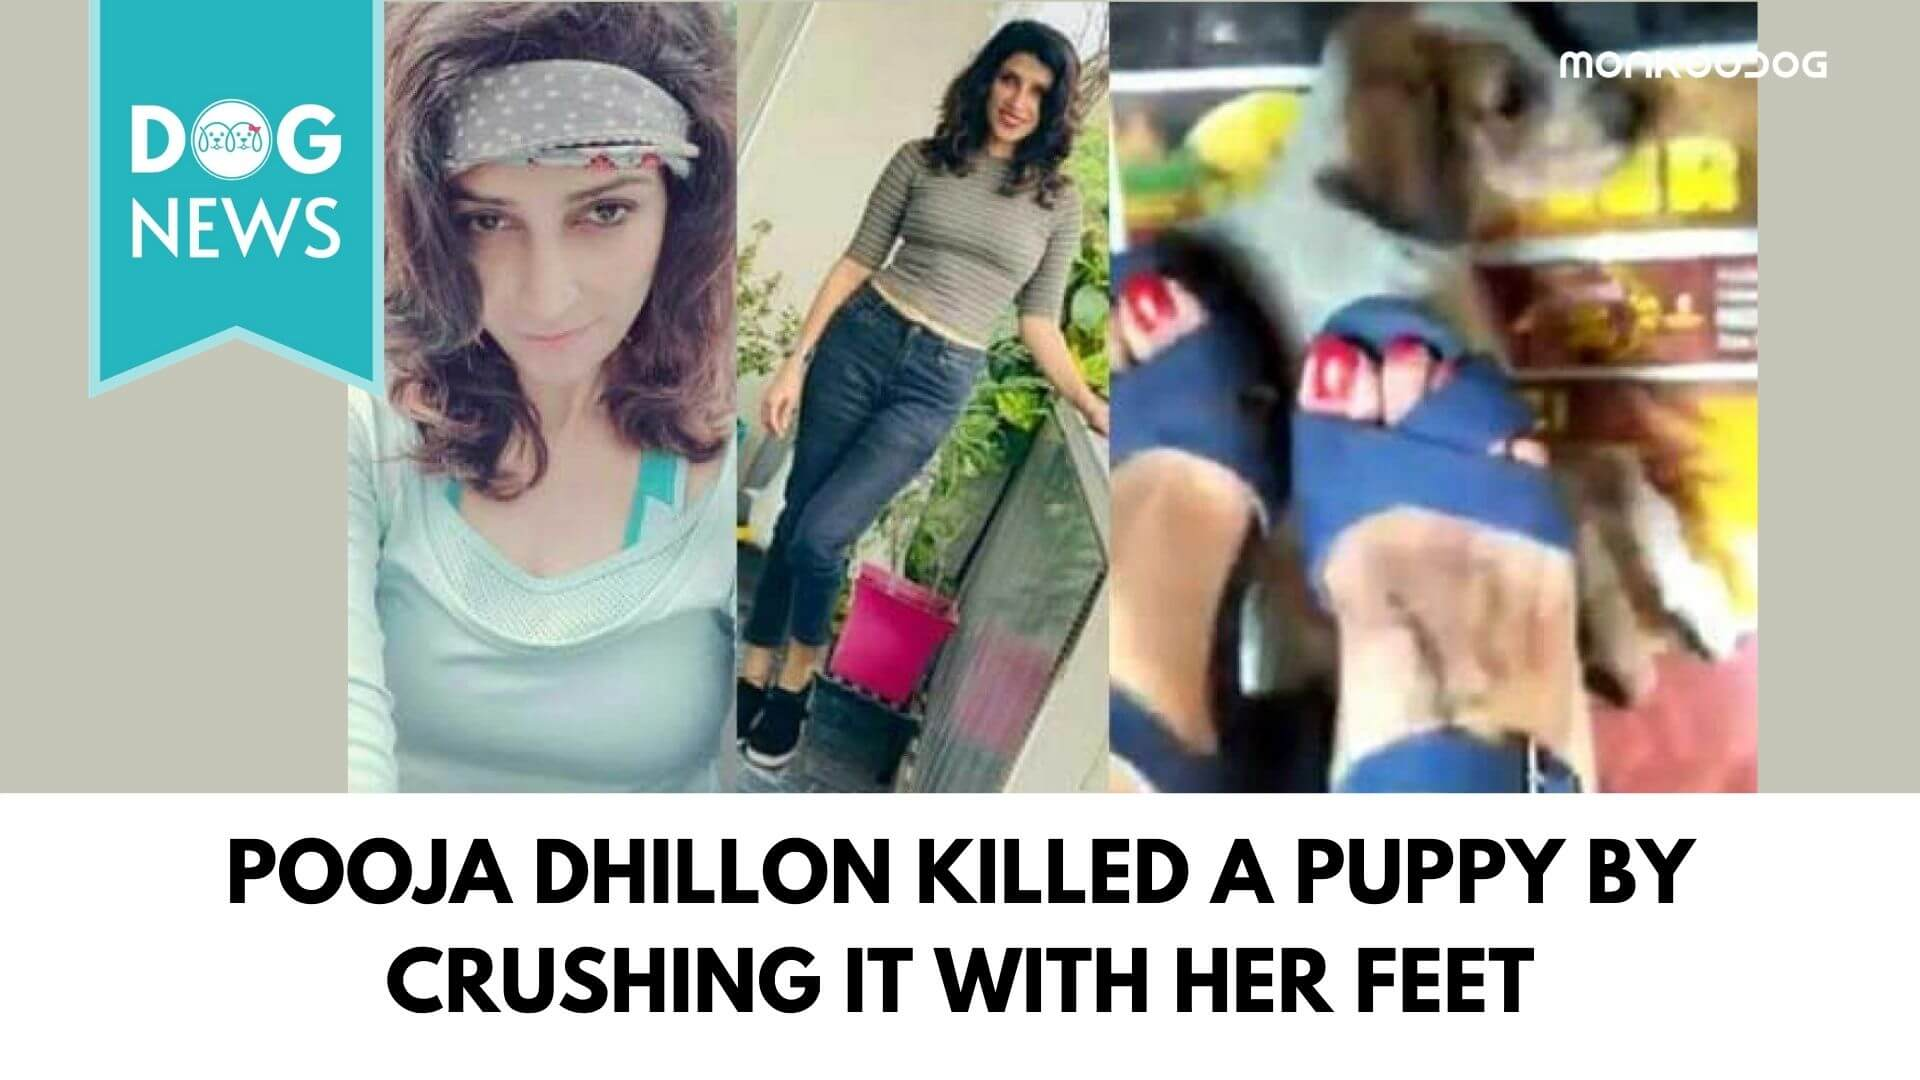 A Woman stomped and killed innocent puppies in her car, revealed the psychopathic ugliness behind a beautiful face.